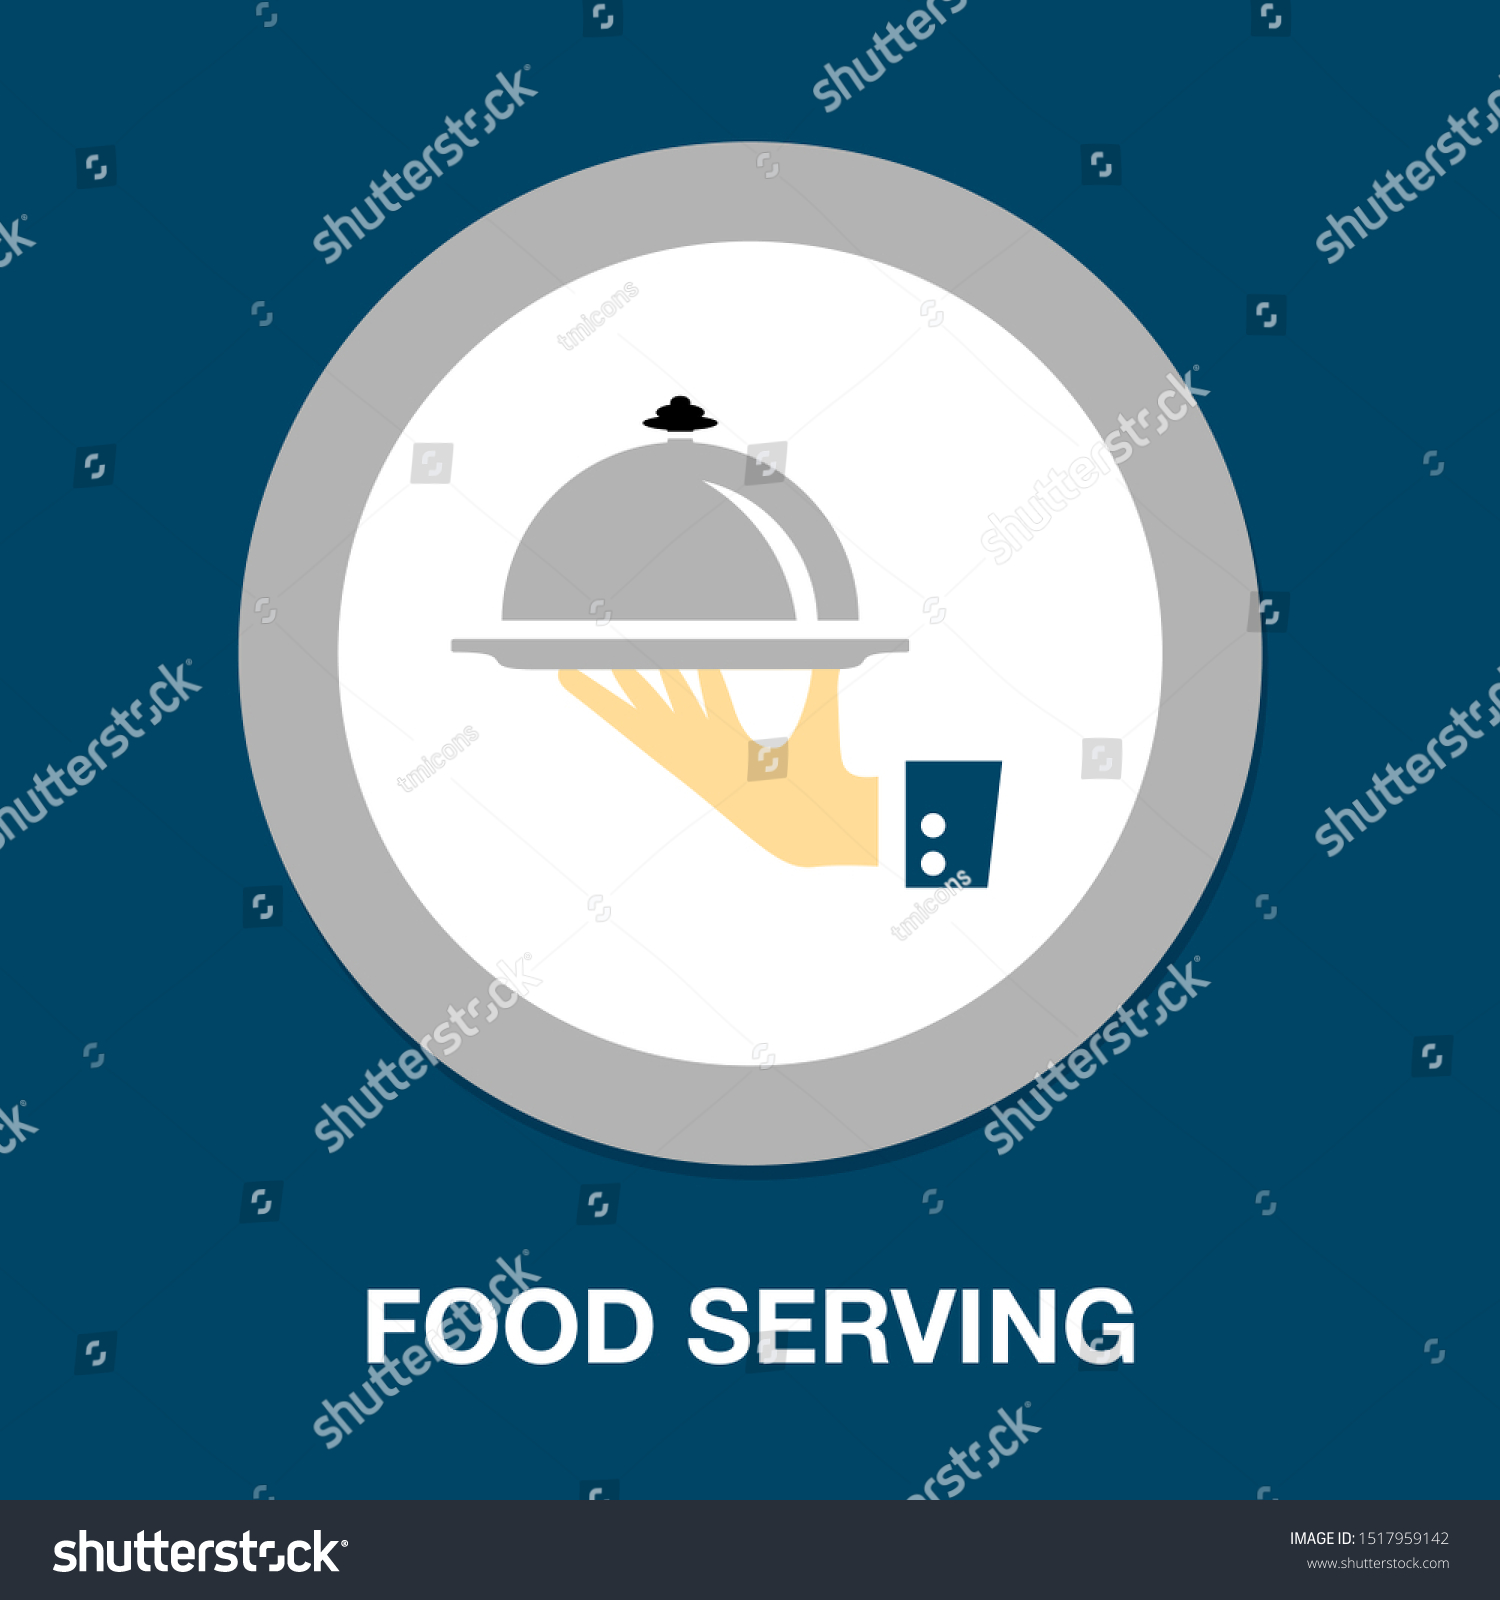 Food platter serving sign icon - restaurant sign, food serving illustration